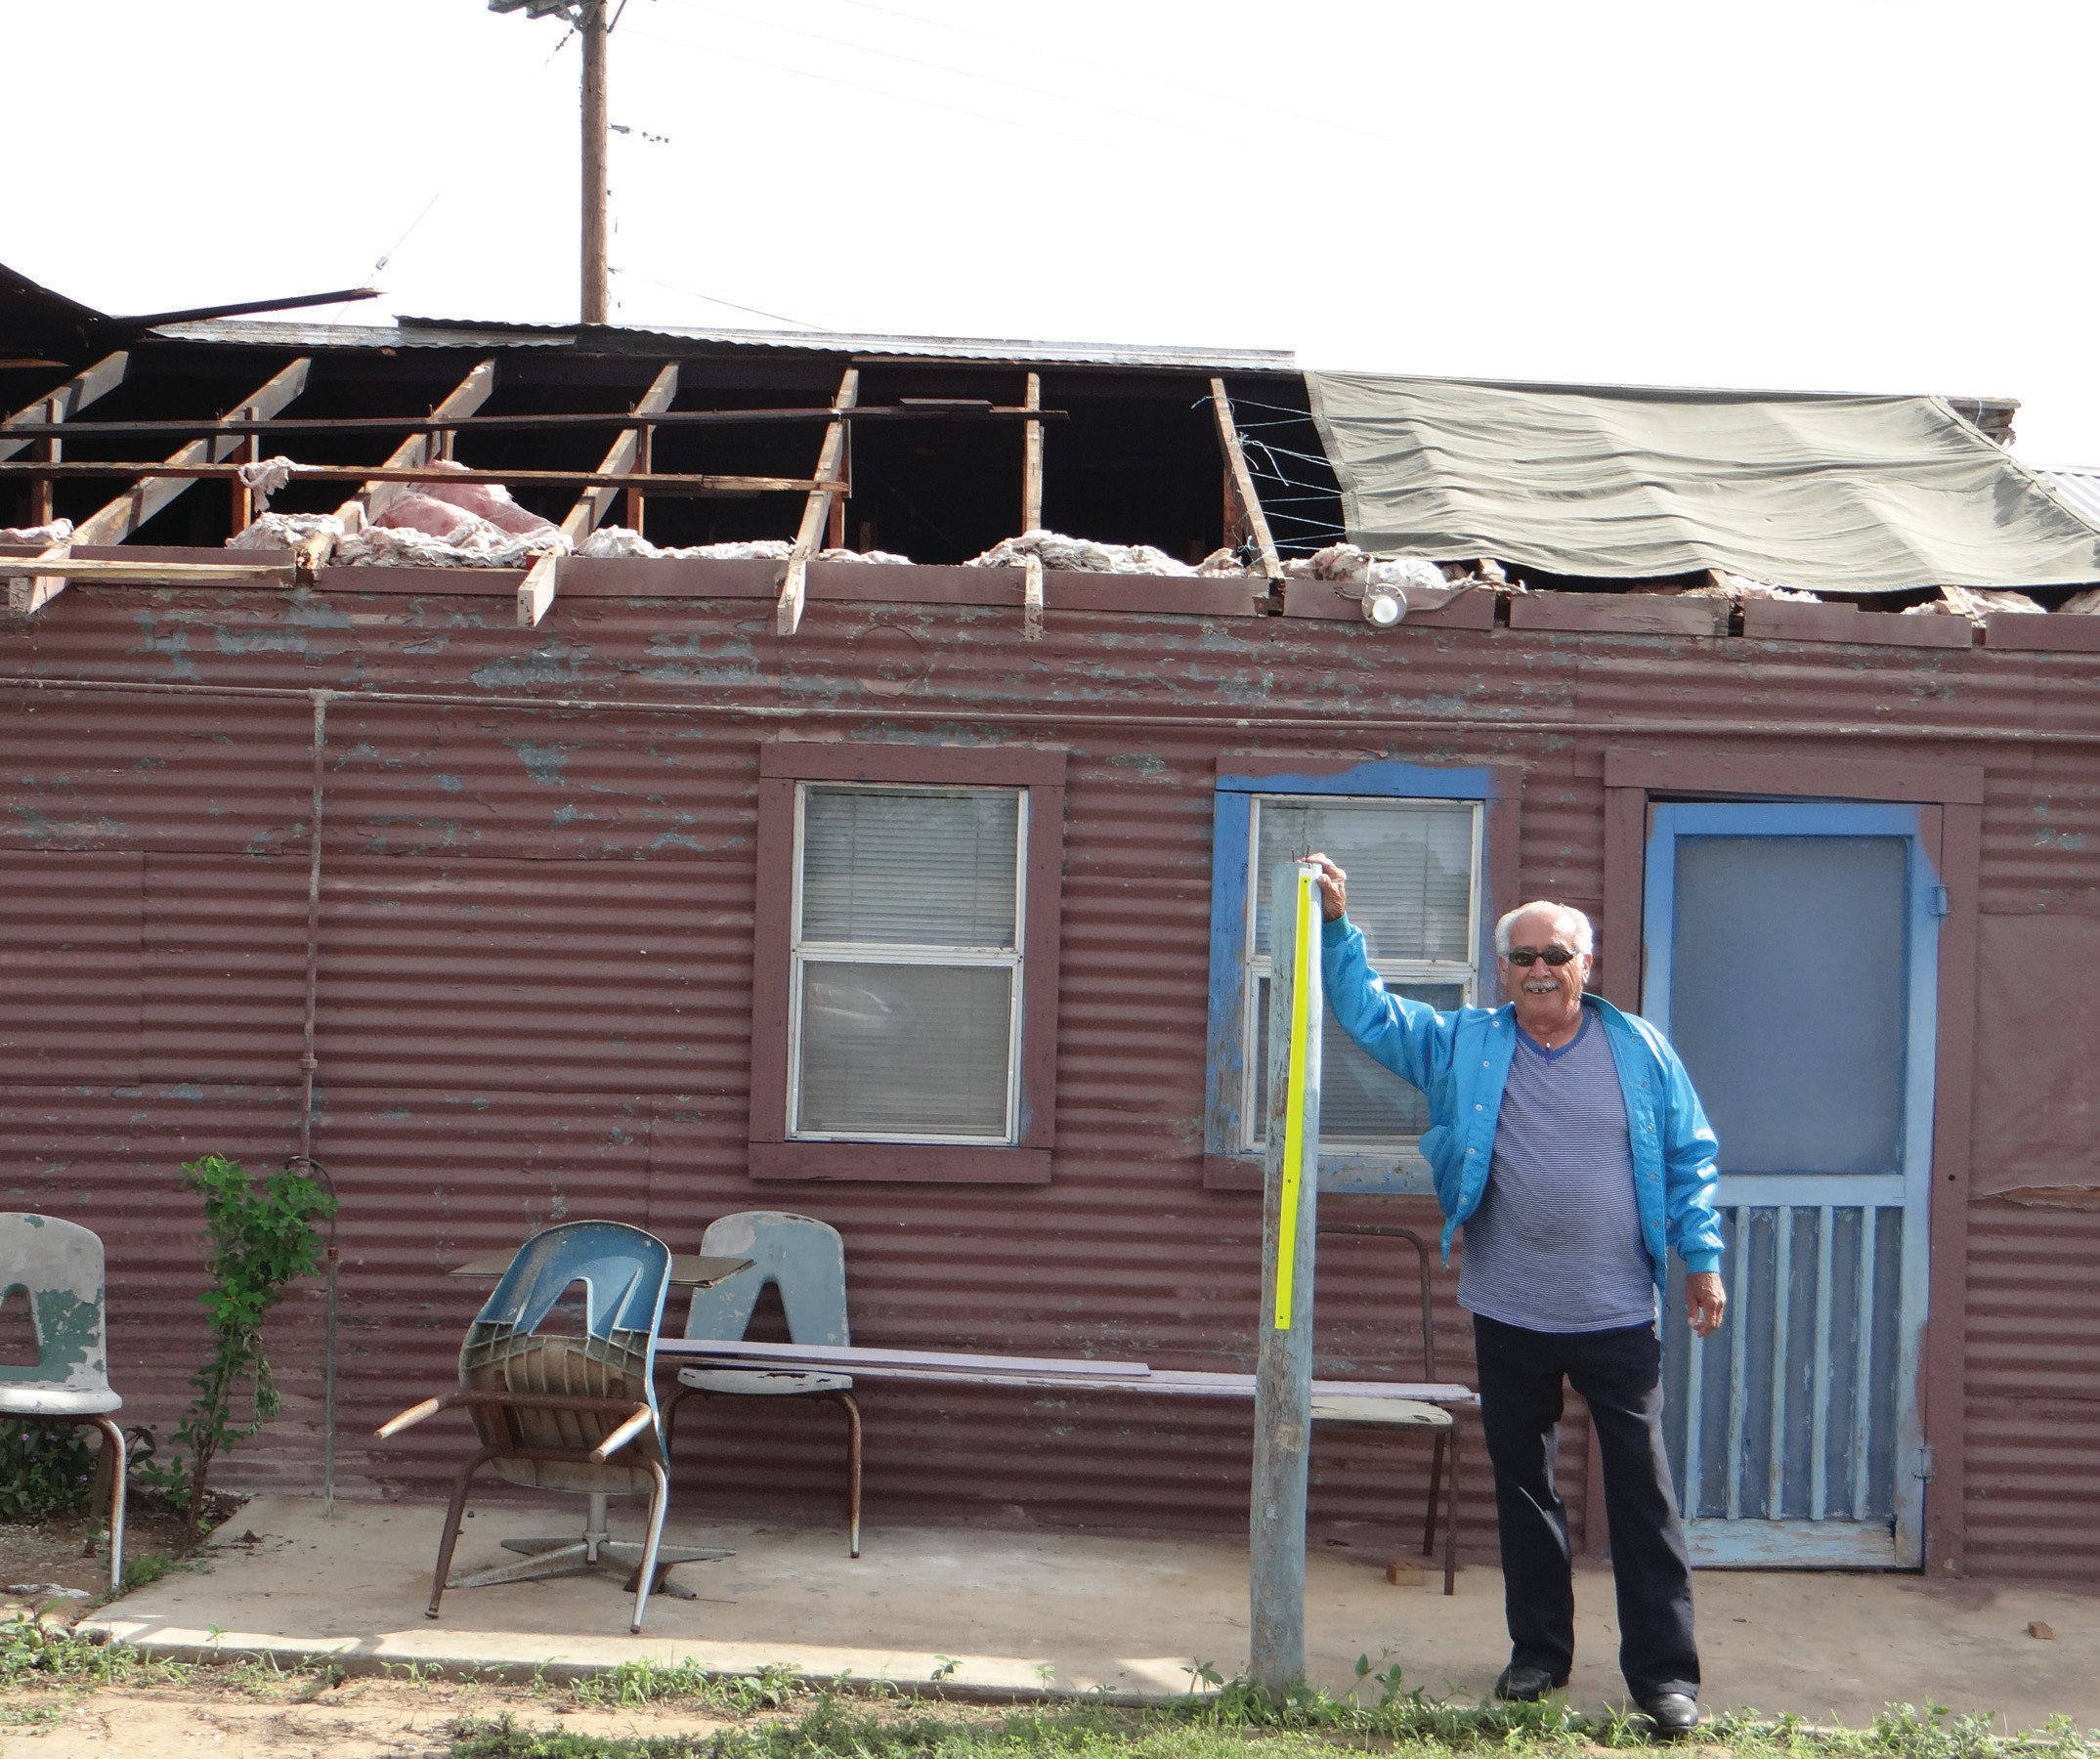 Smitty Gallegos of Gallegos' Place stands next to his damaged building from the storms that brewed over the weekend. Tornado-like winds ripped off his ceiling, loosened wires and twisted tree limbs on his property located south of Pleasanton on Hwy. 281.